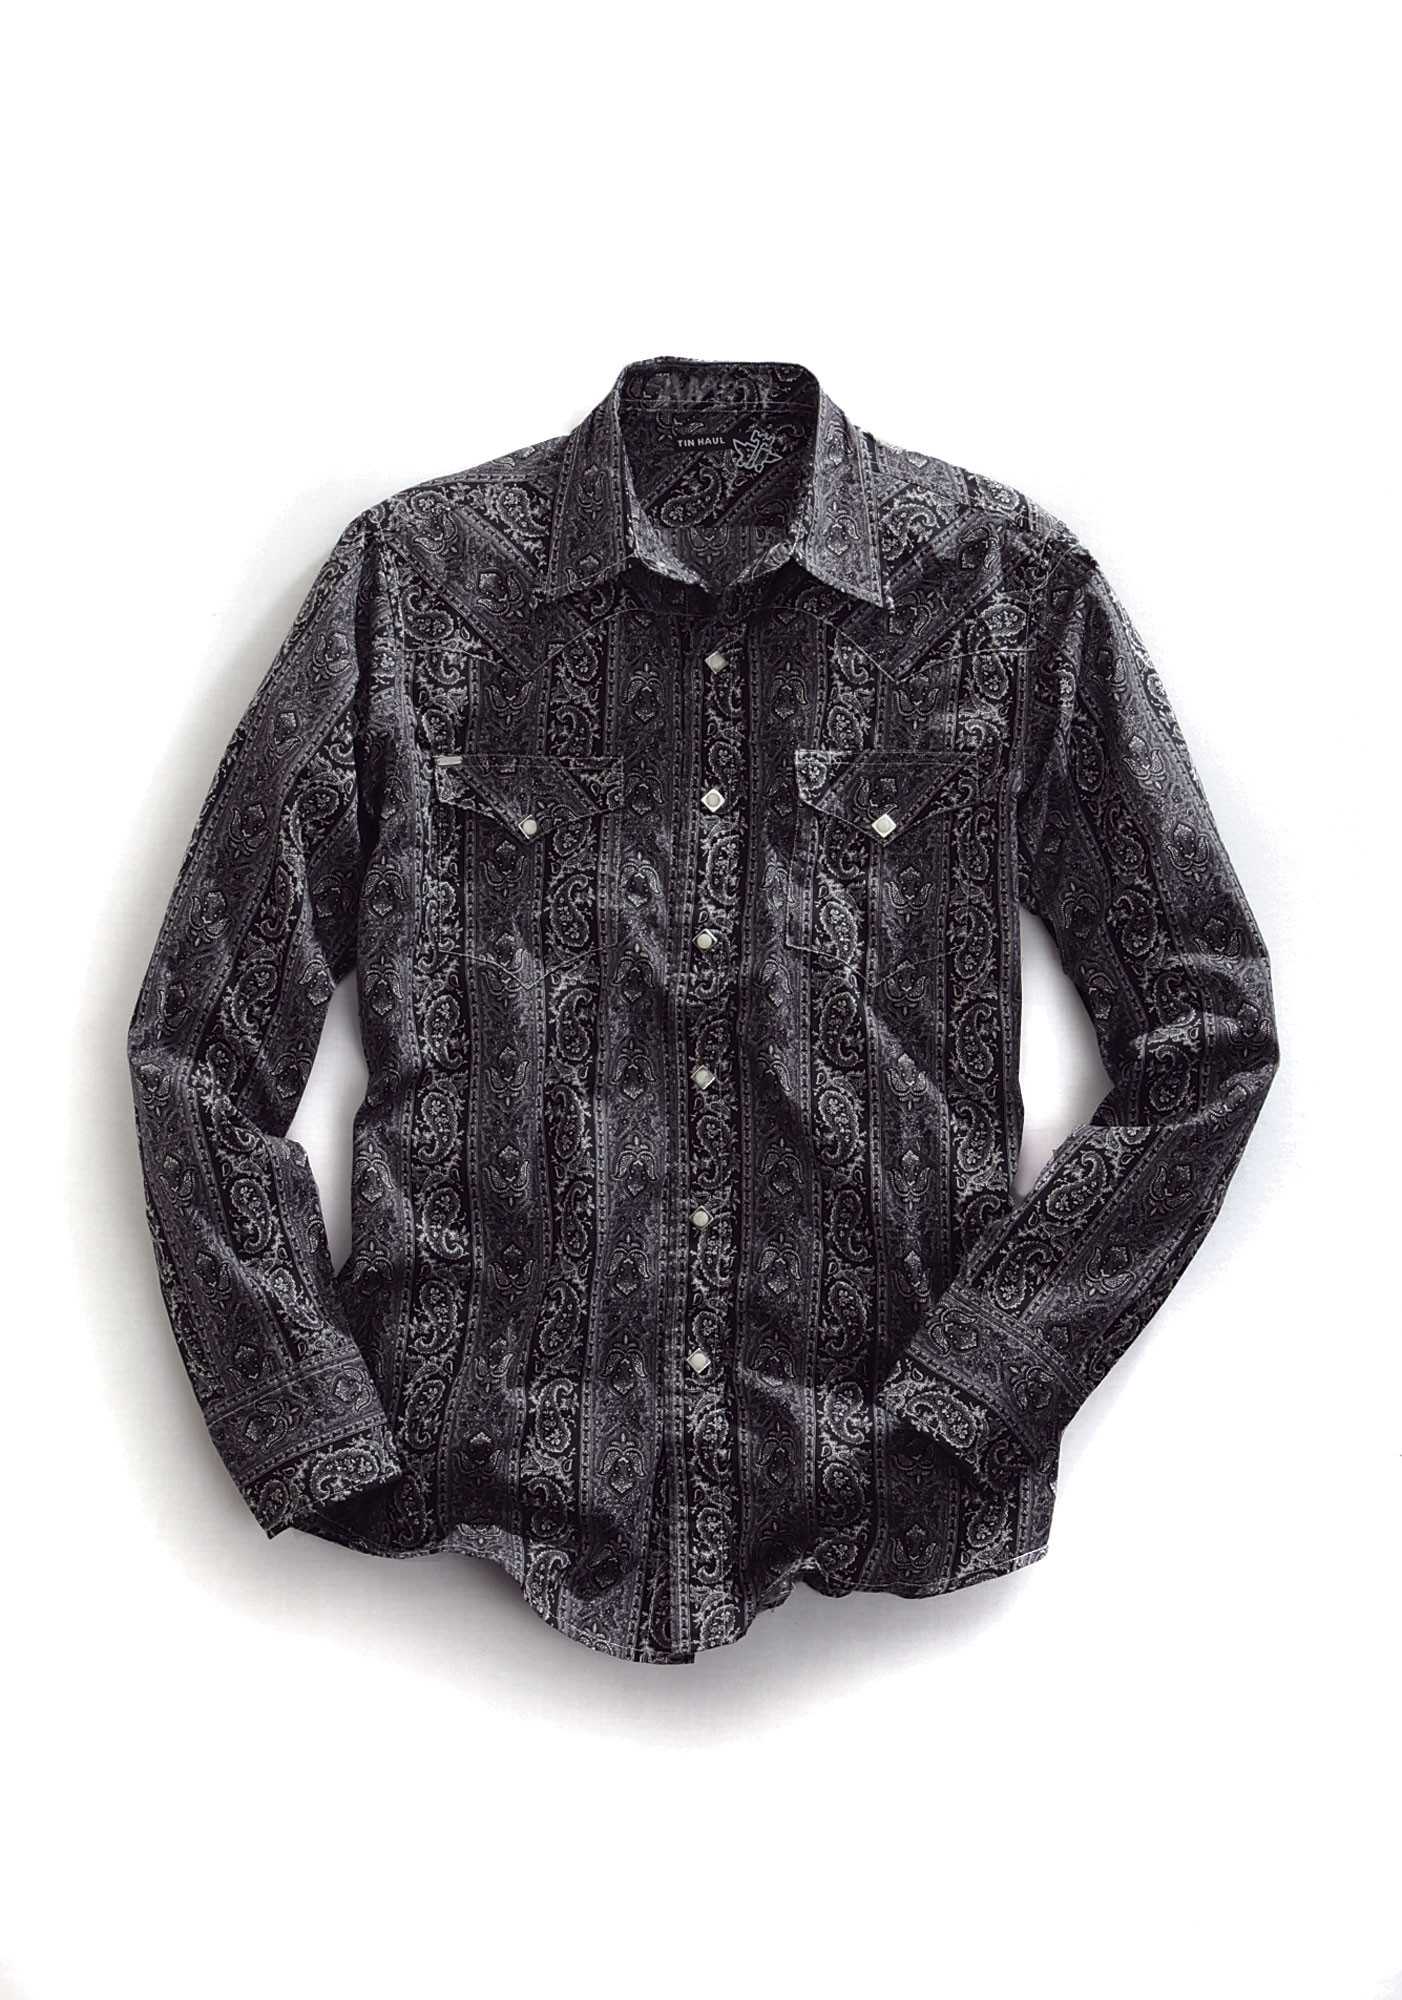 Tin Haul Mens Black Paisley Cotton Ls Snap Cowboy Shirt